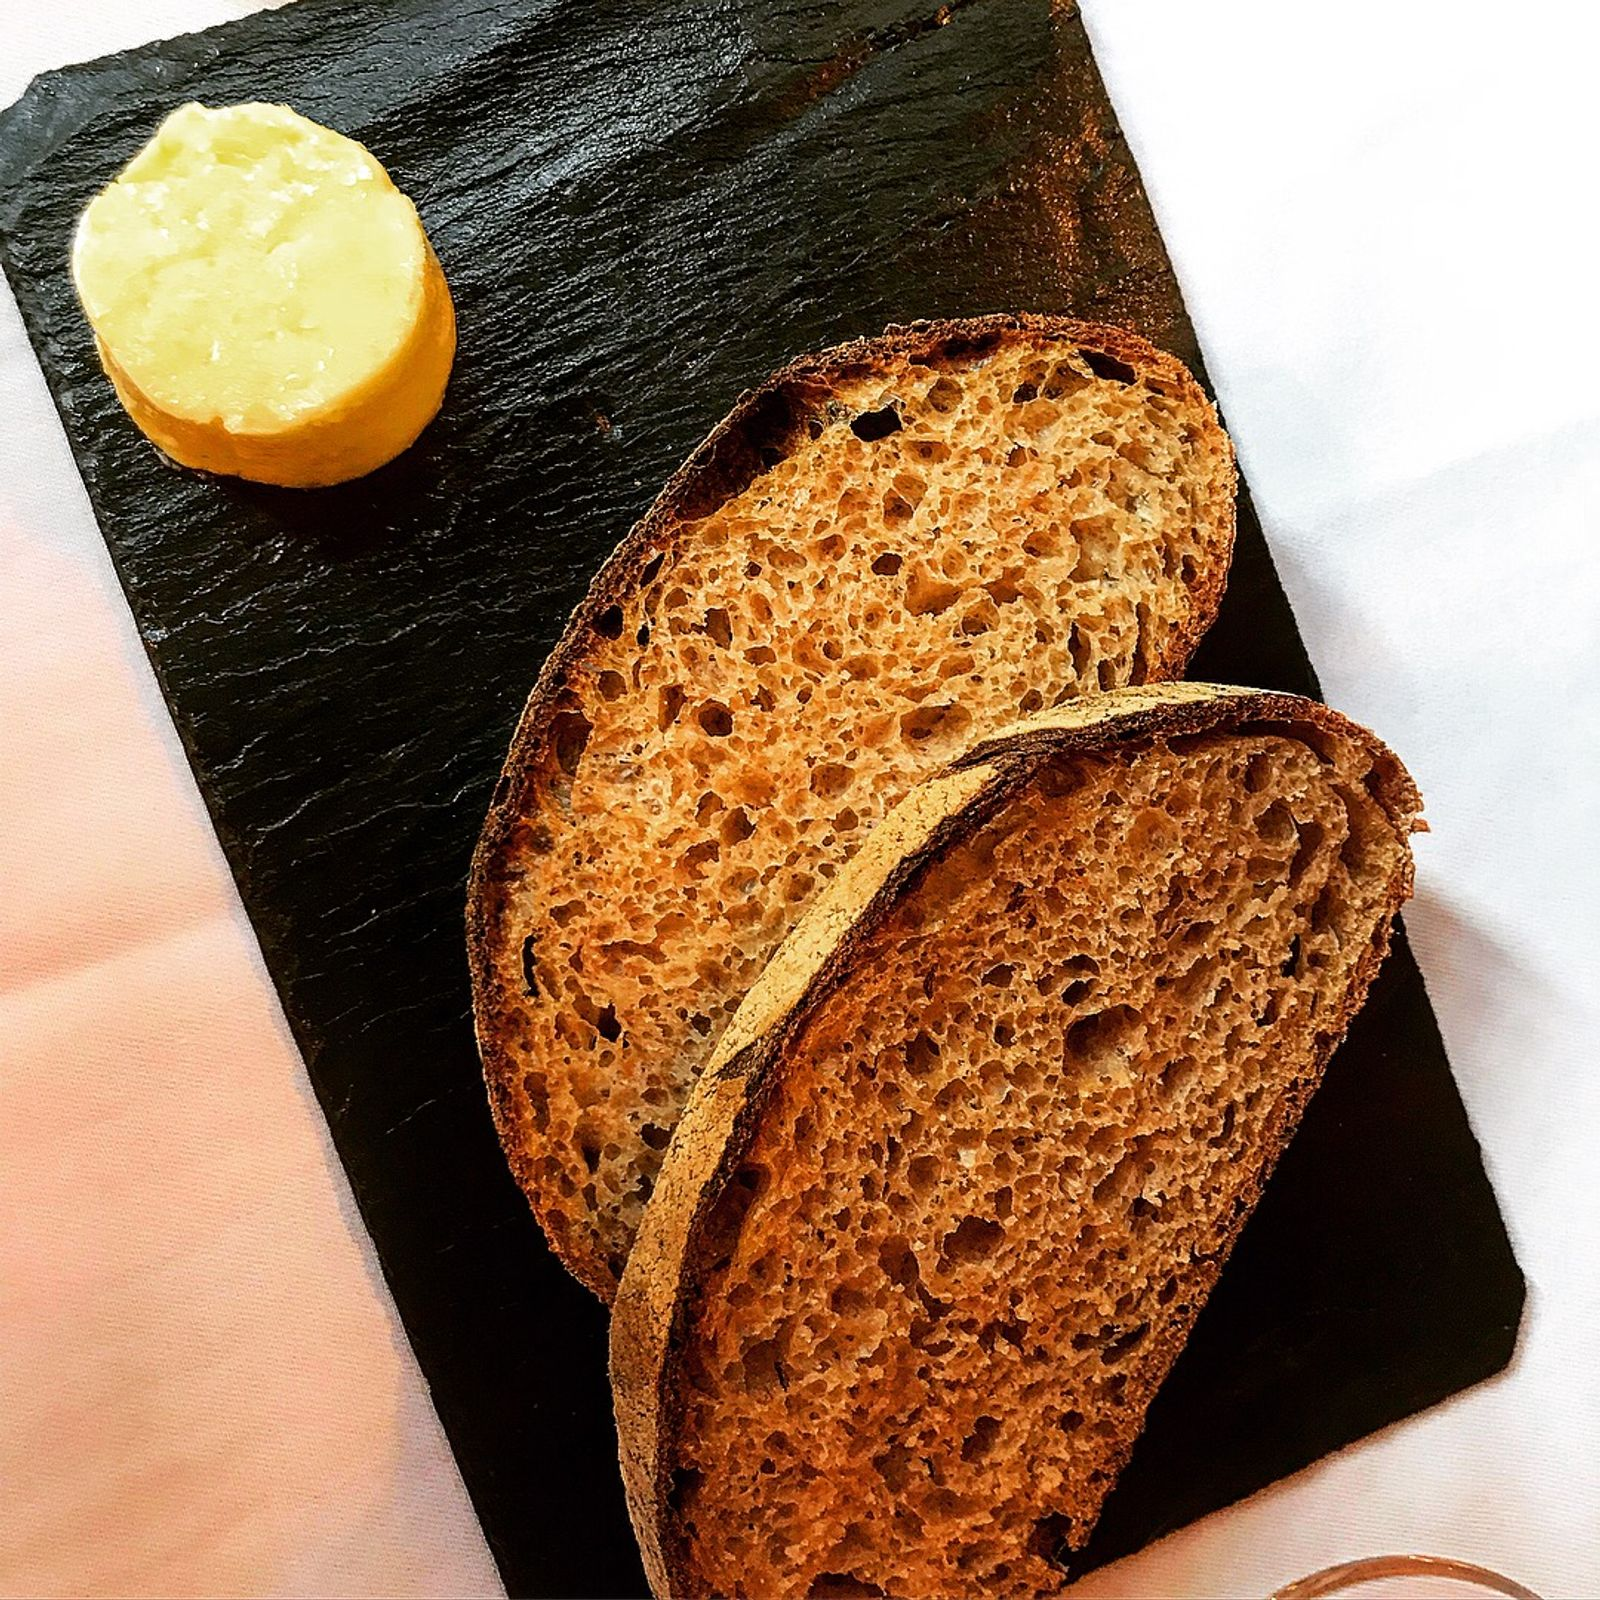 Sourdough bread and cultured butter - The Granary in Newtown